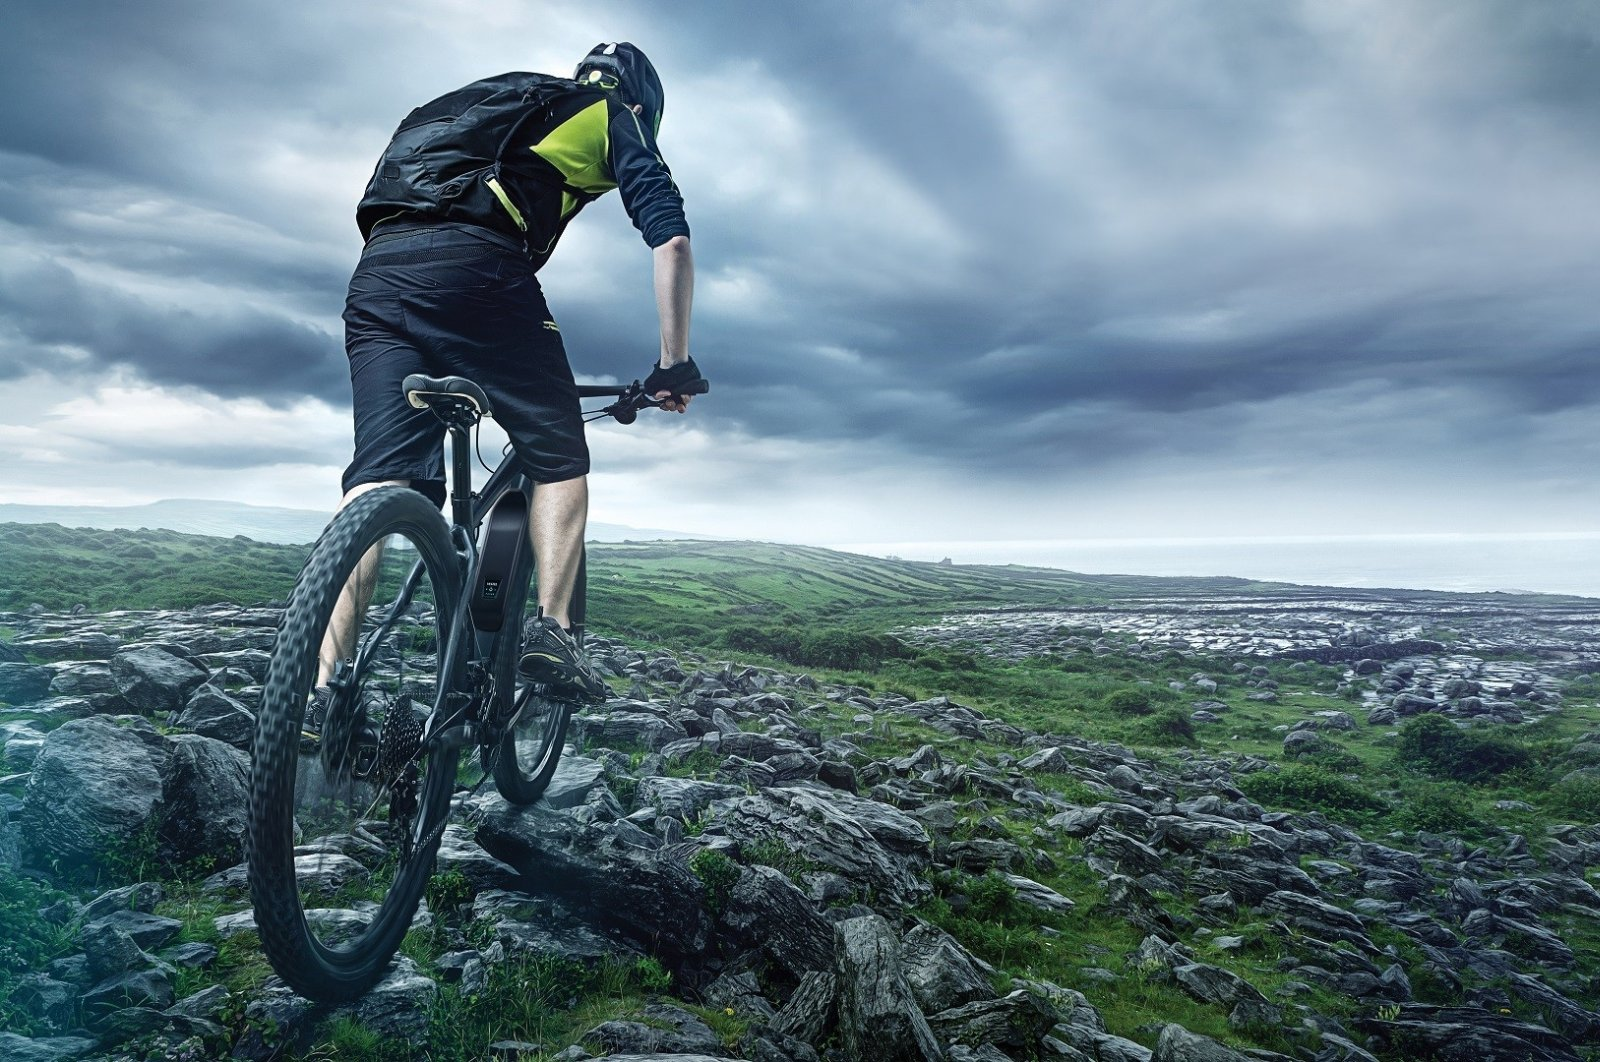 This concept photo provided on Oct. 20, 2020, depicts a biker using a Vestel battery-powered e-bike. (IHA Photo)